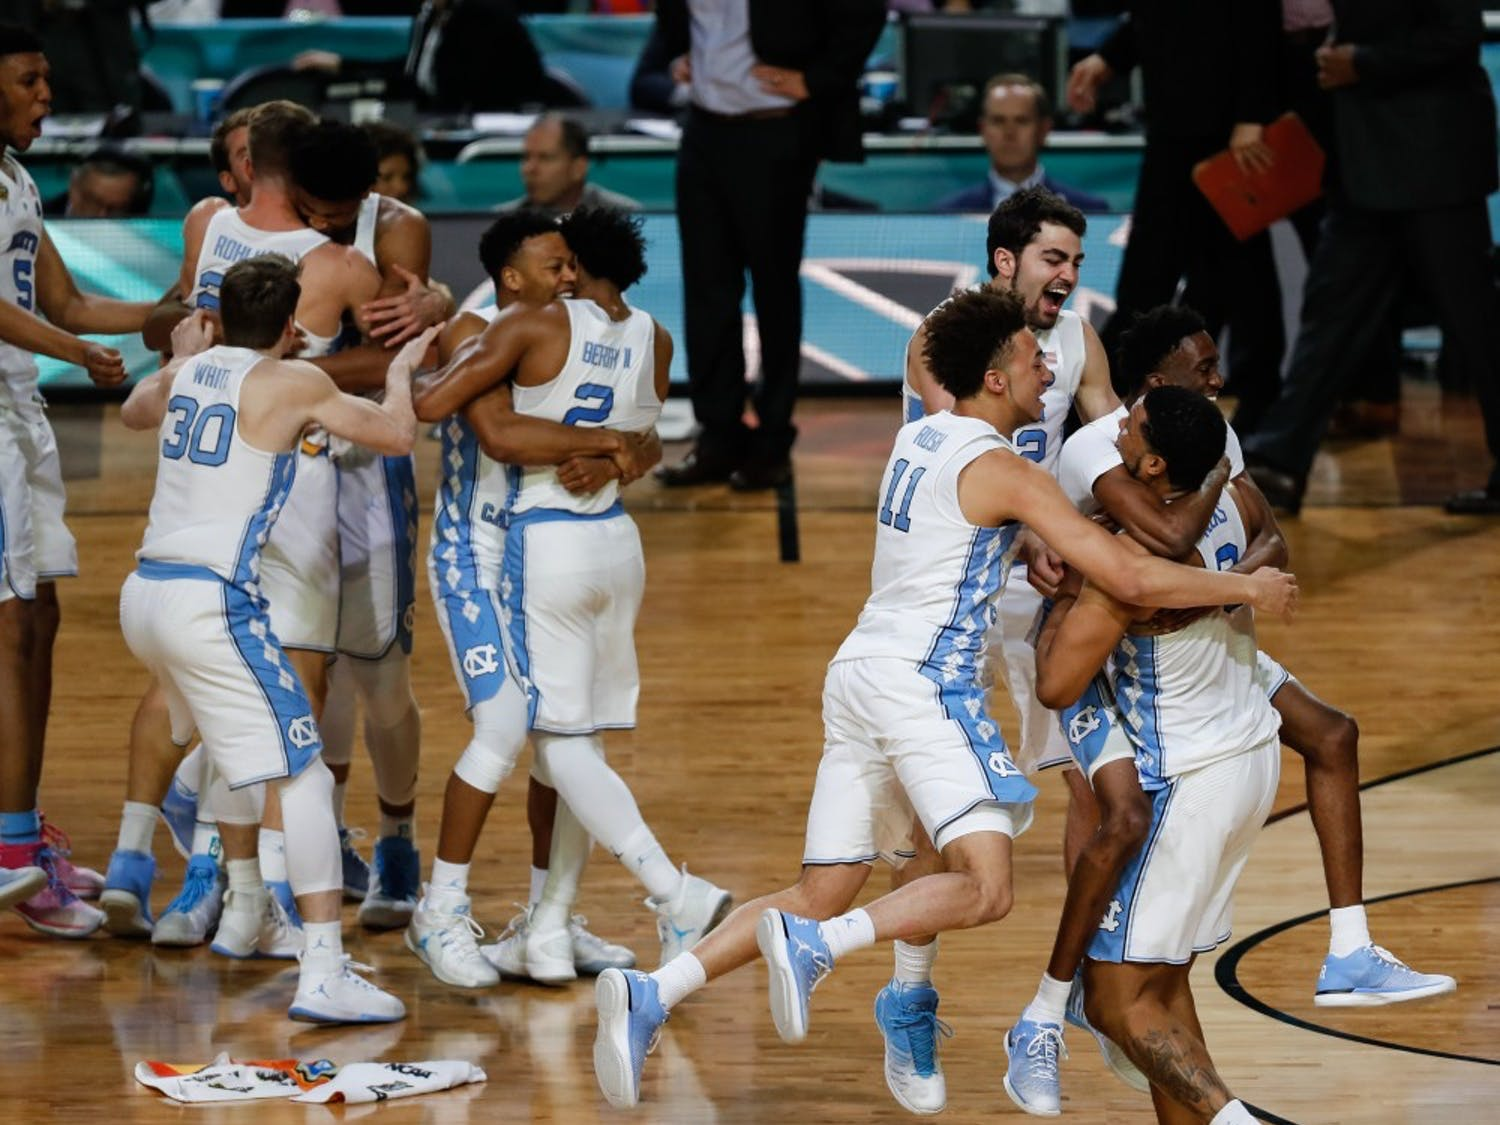 The North Carolina men's basketball defeated Gonzaga 71-65 in the NCAA National Championship to claim the title only a year after losing to Villanova in the title game.